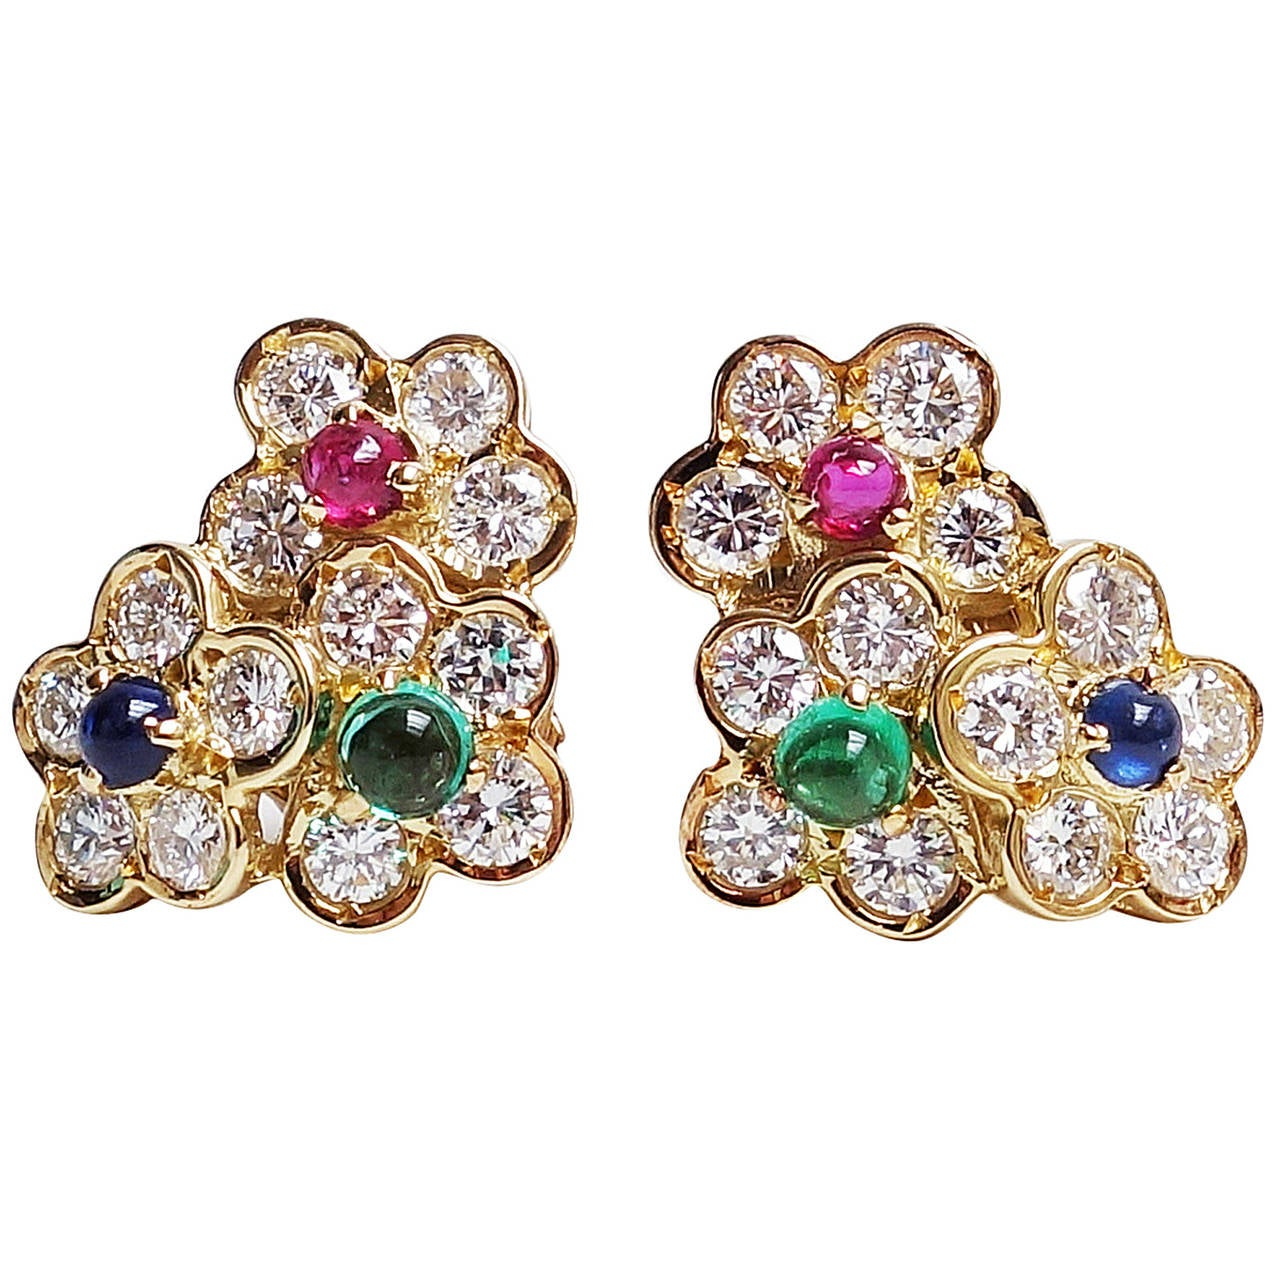 Van Cleef & Arpels Emerald Ruby Sapphire Diamond Gold Flower Earrings 1